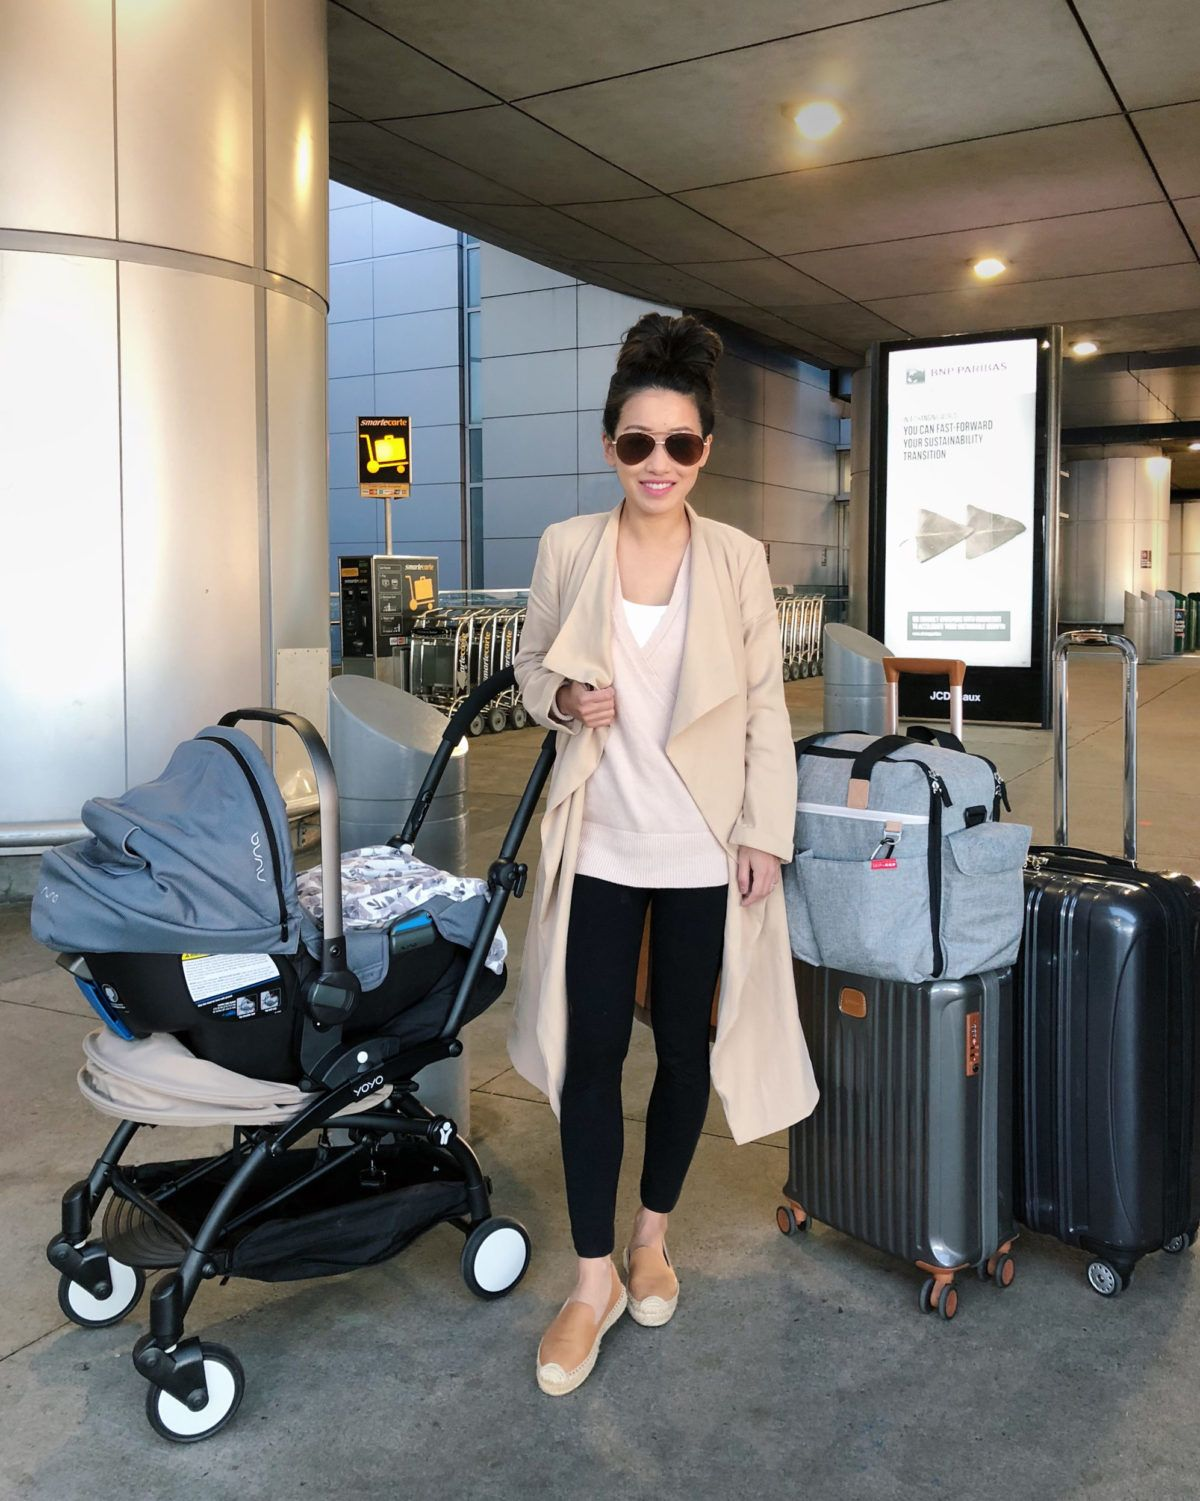 breastfeeding nursing friendly travel outfit for airport 1f65f98042d53